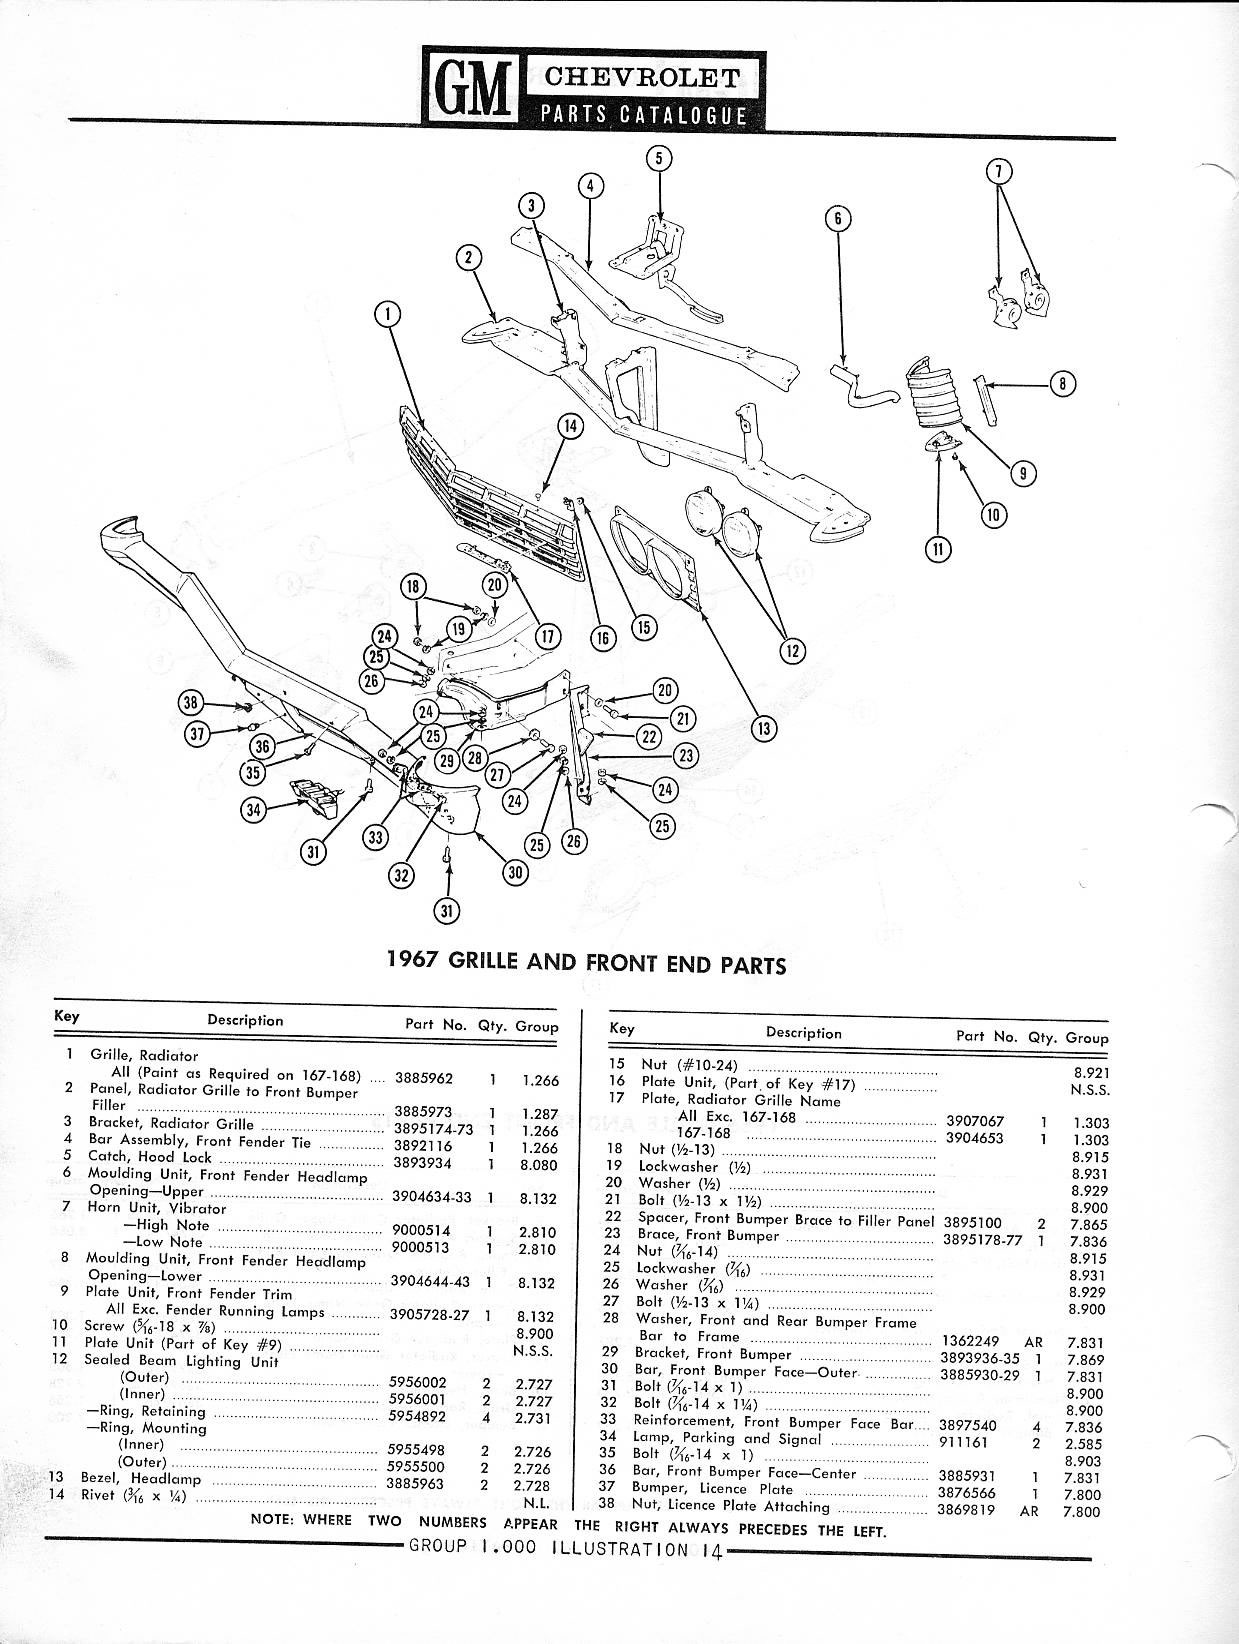 1950 chevy truck parts catalog